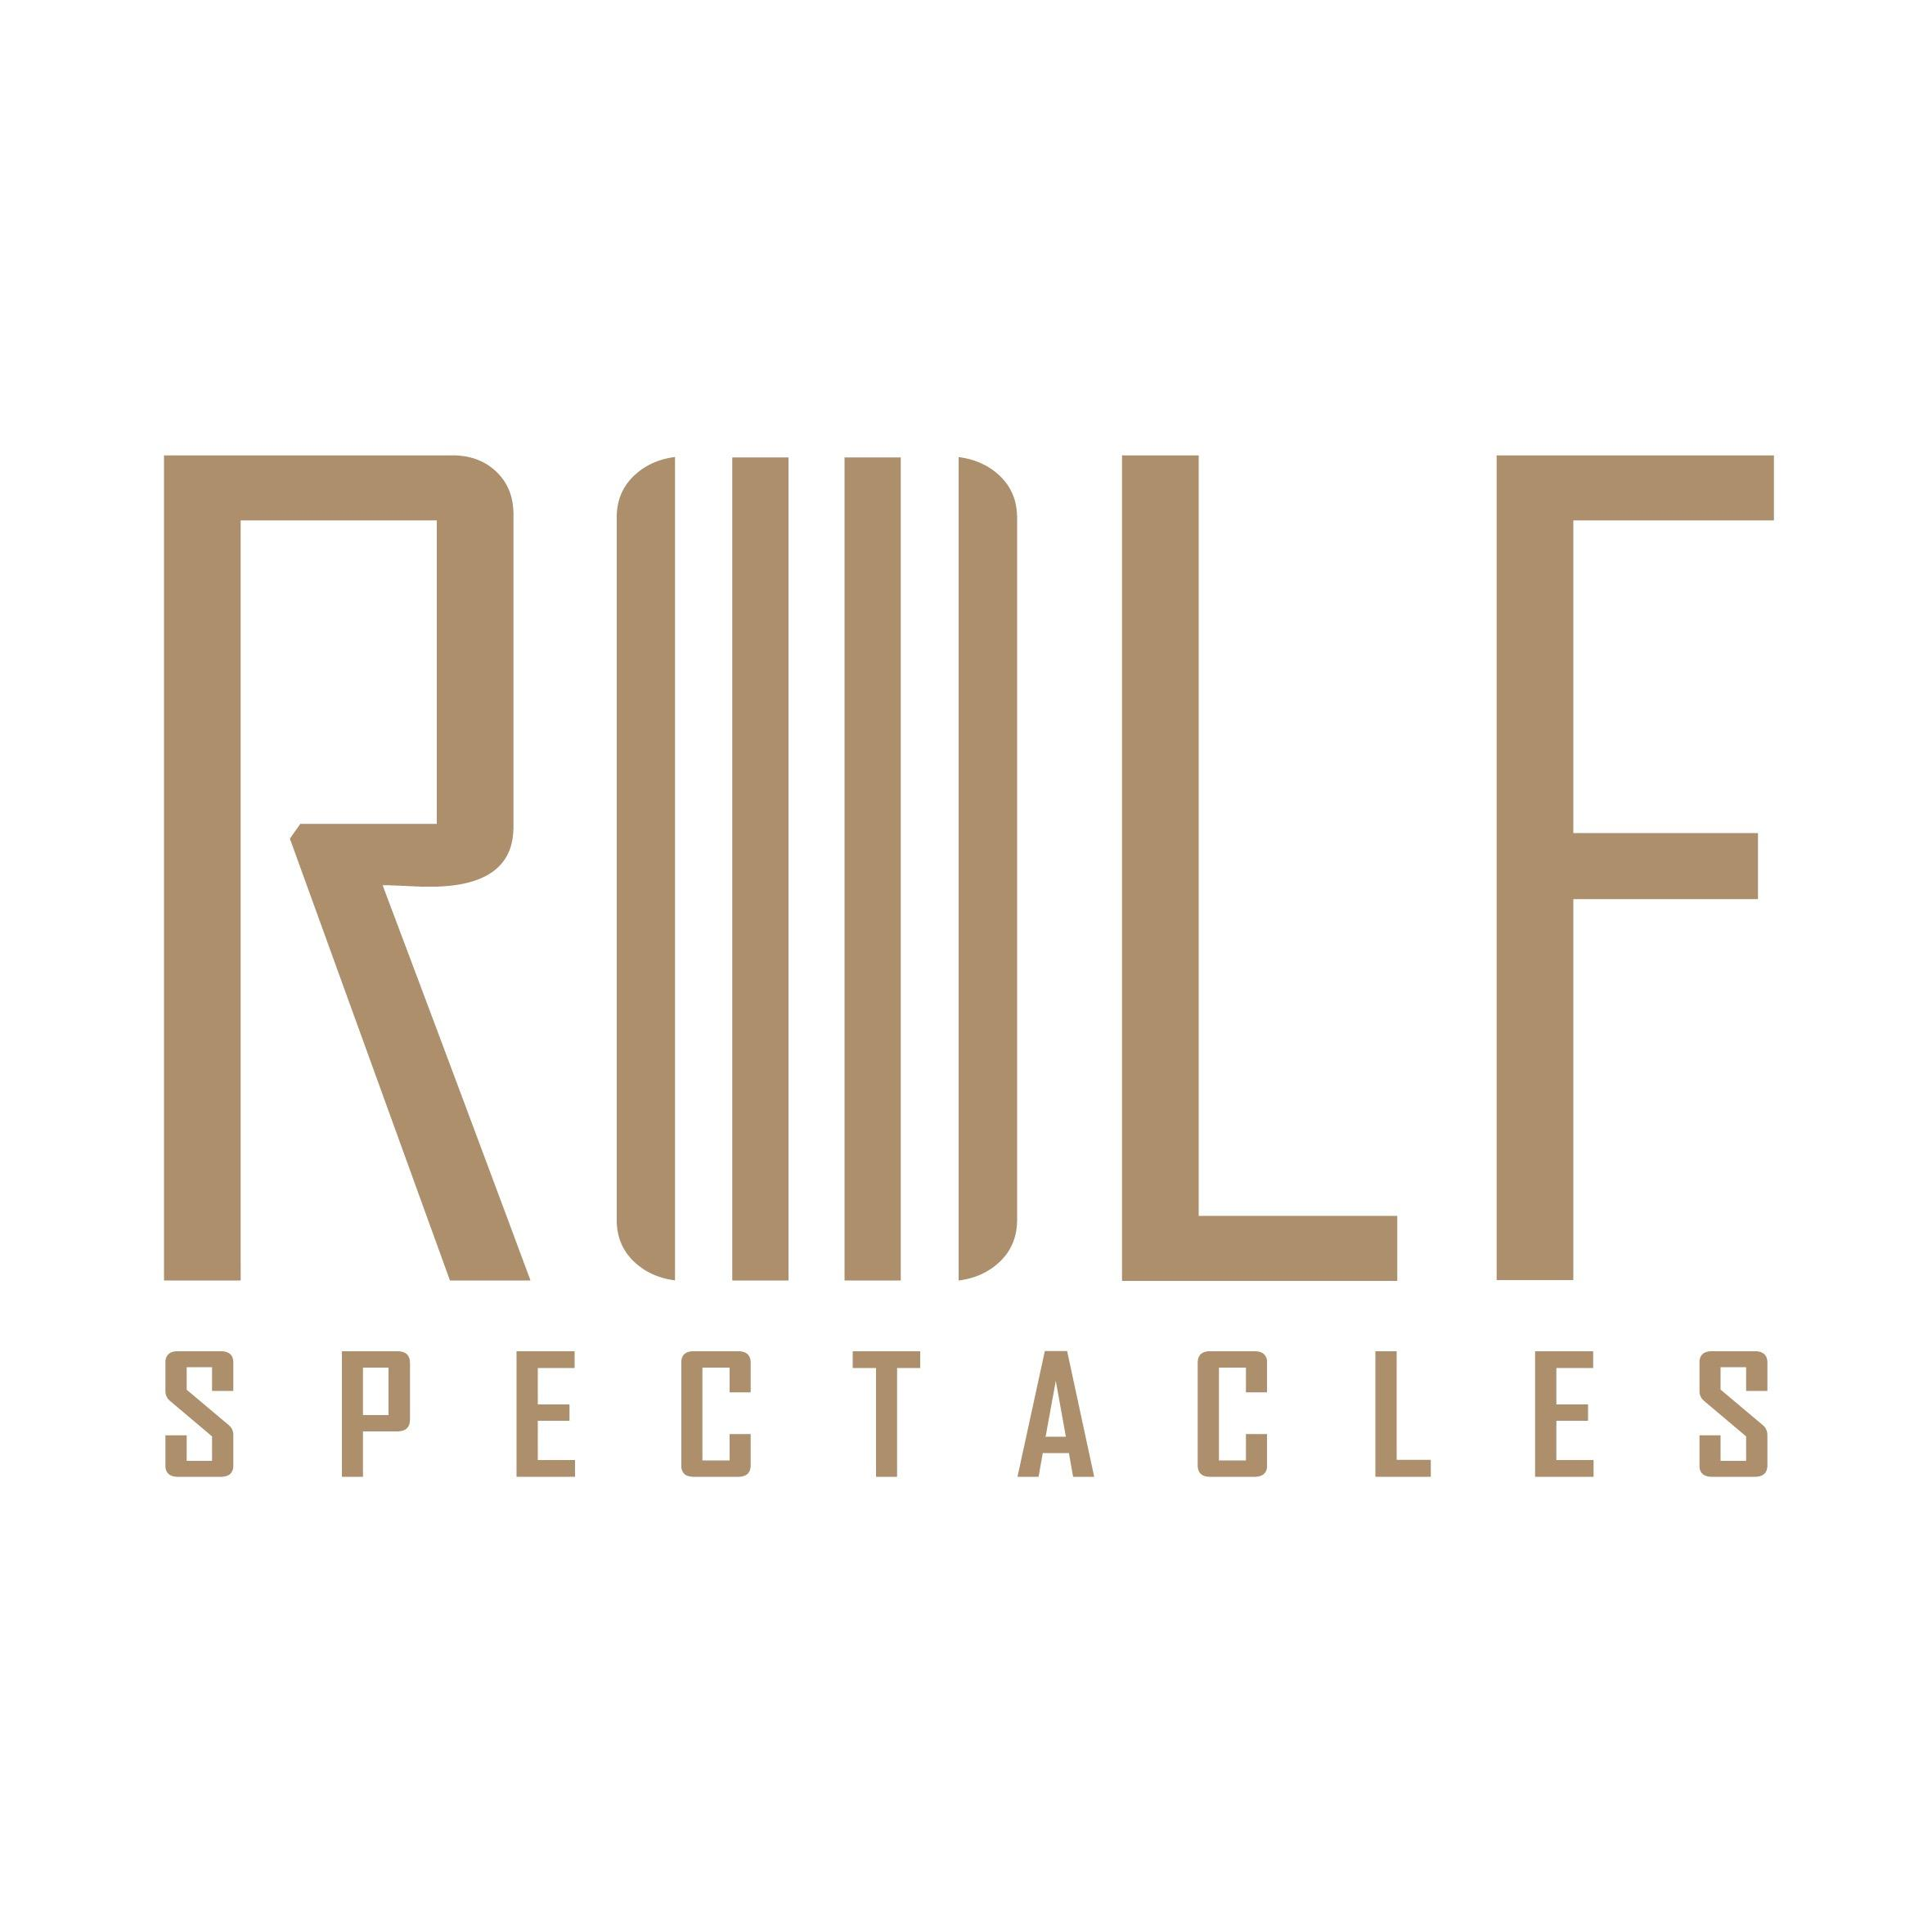 0b7343a8604 ROLF Spectacles on Twitter